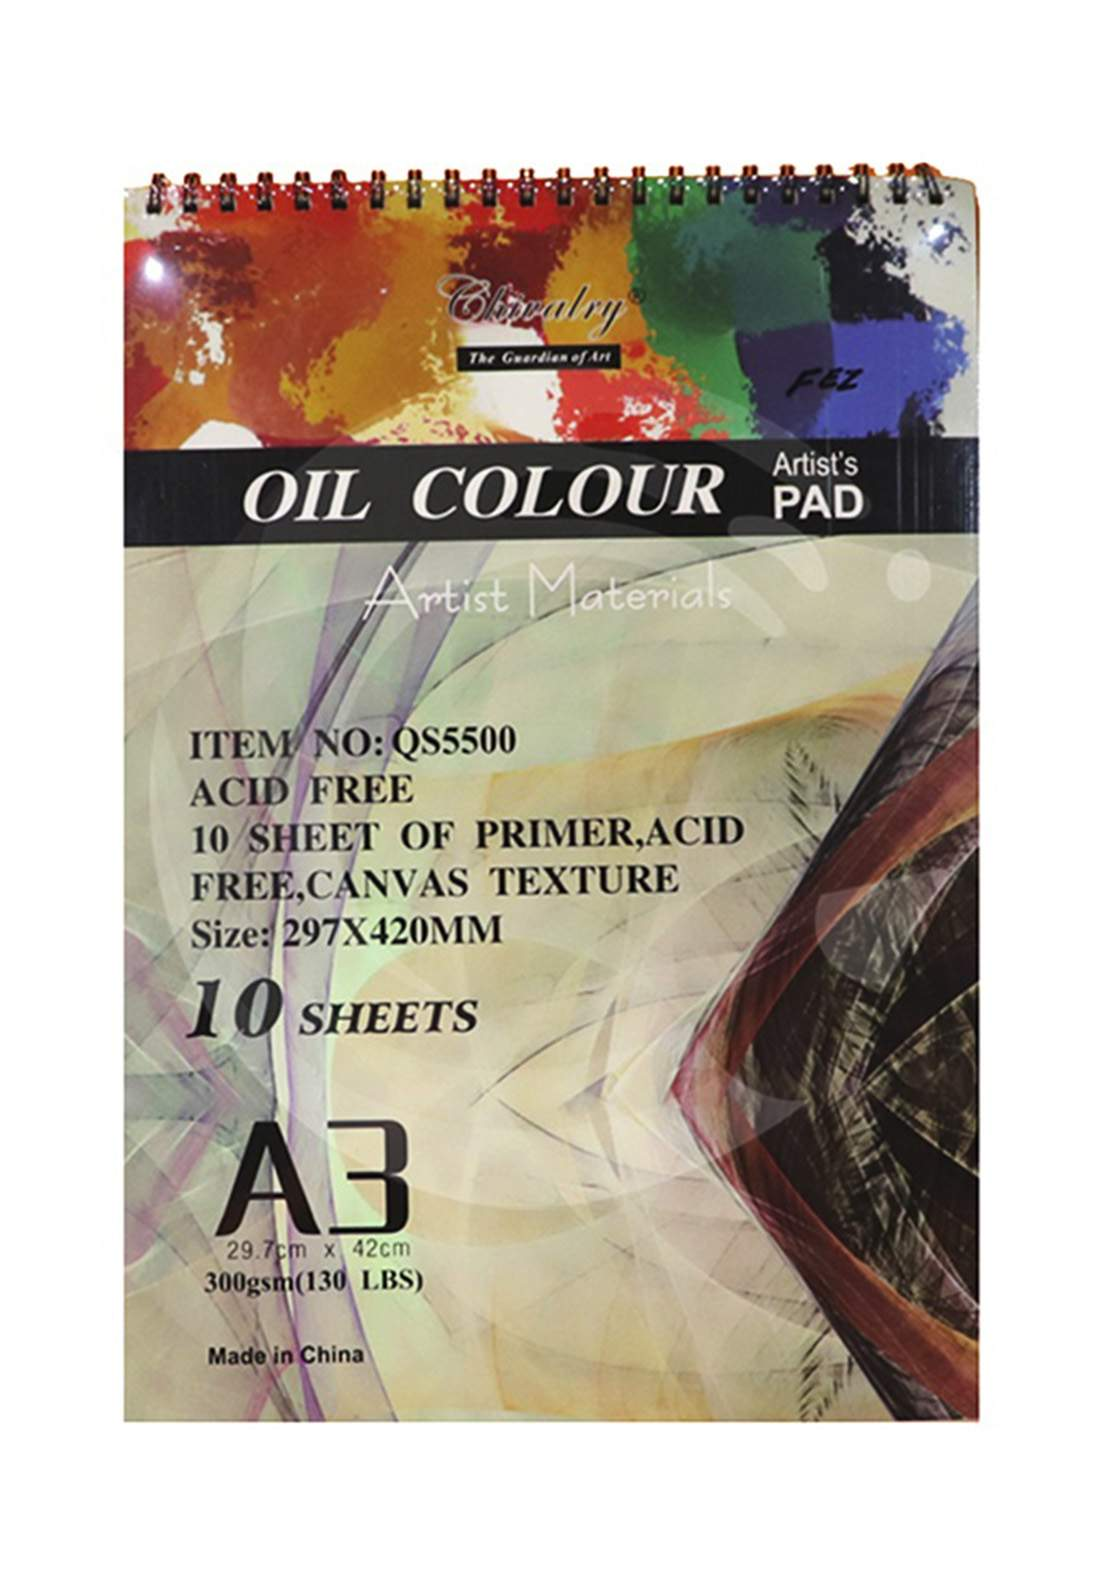 Oil Painting Notebook 10 Sheets A3 دفتر رسم زيتي 10 أوراق